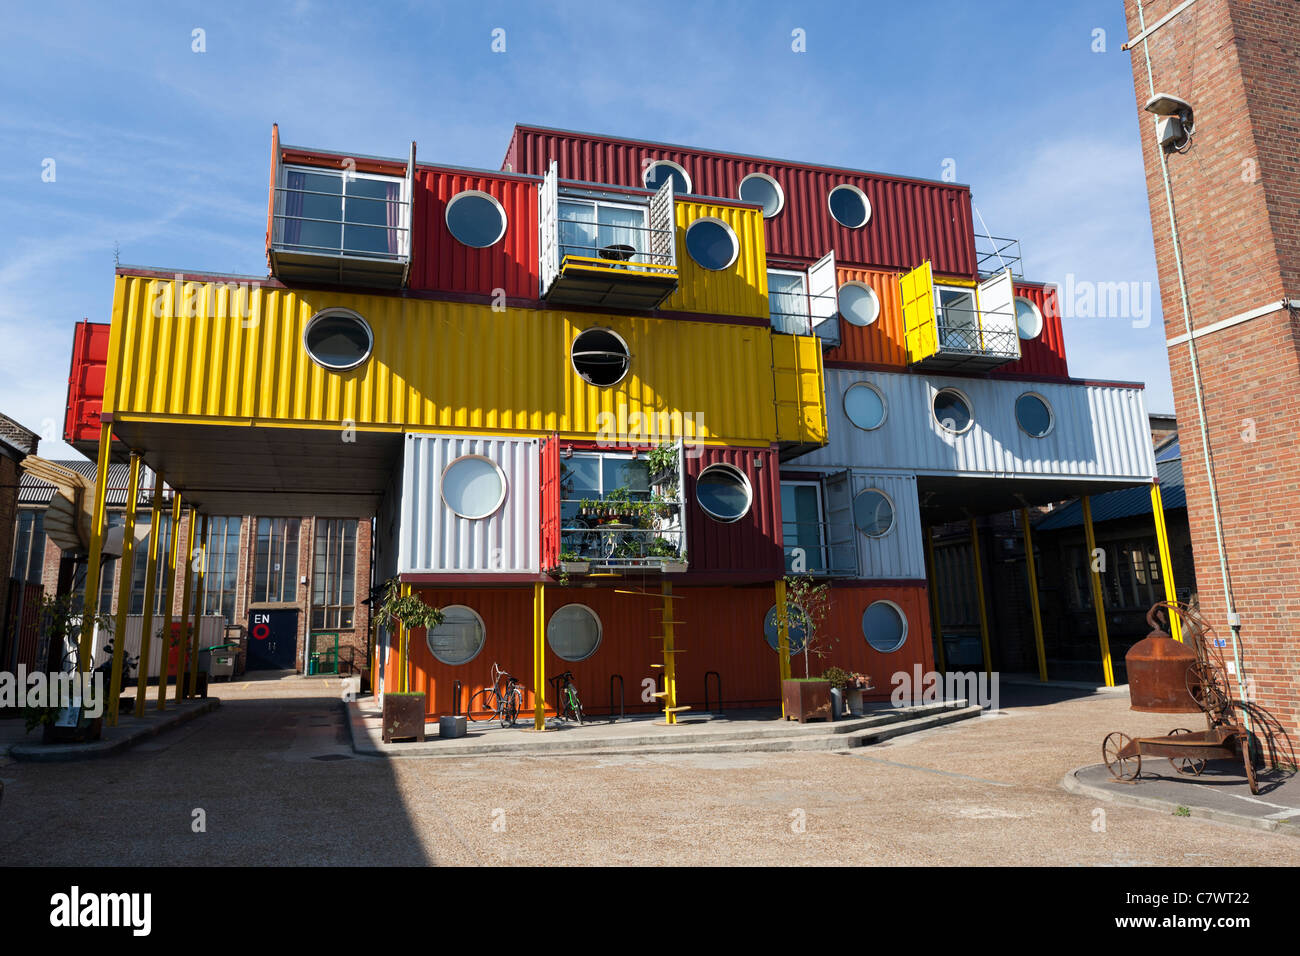 Container City, Trinity Buoy Wharf, Tower Hamlets, London, England, UK. Photo Stock